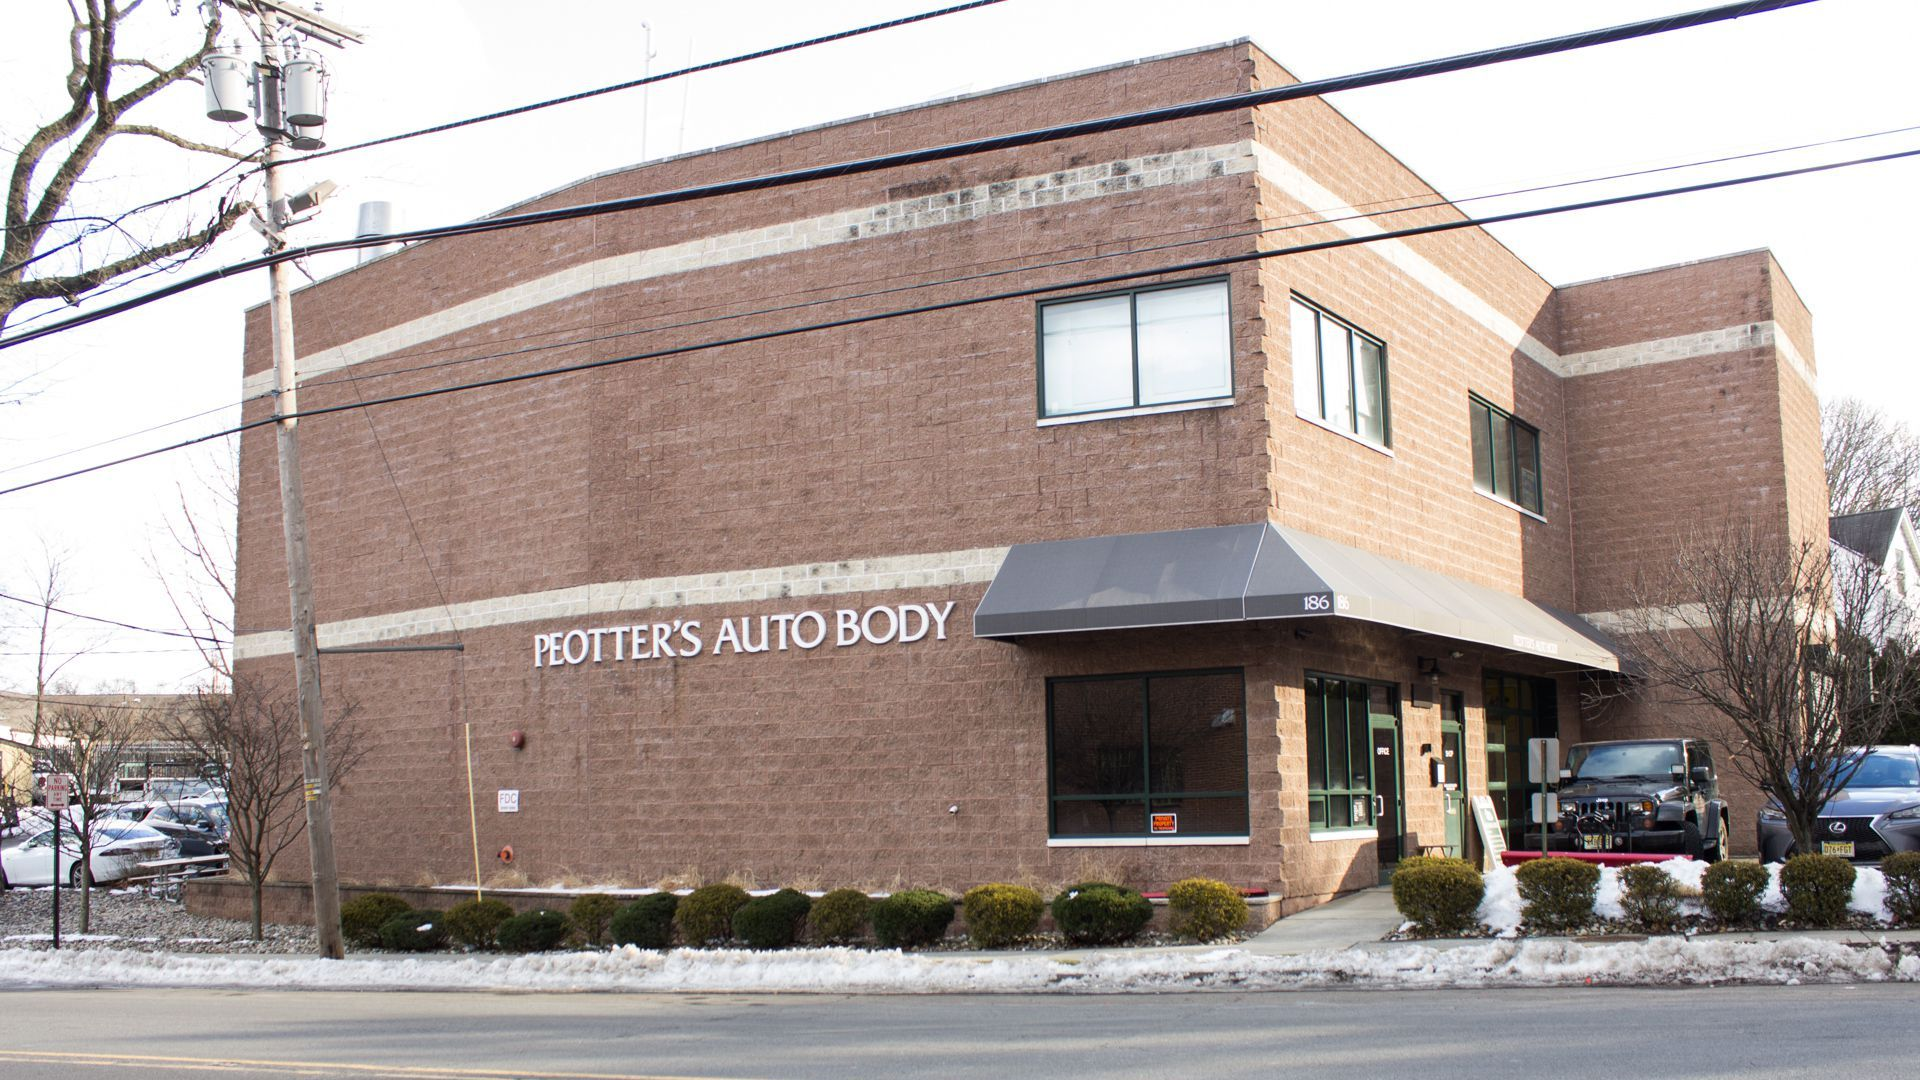 Contact - Peotter's Auto Body, Inc.